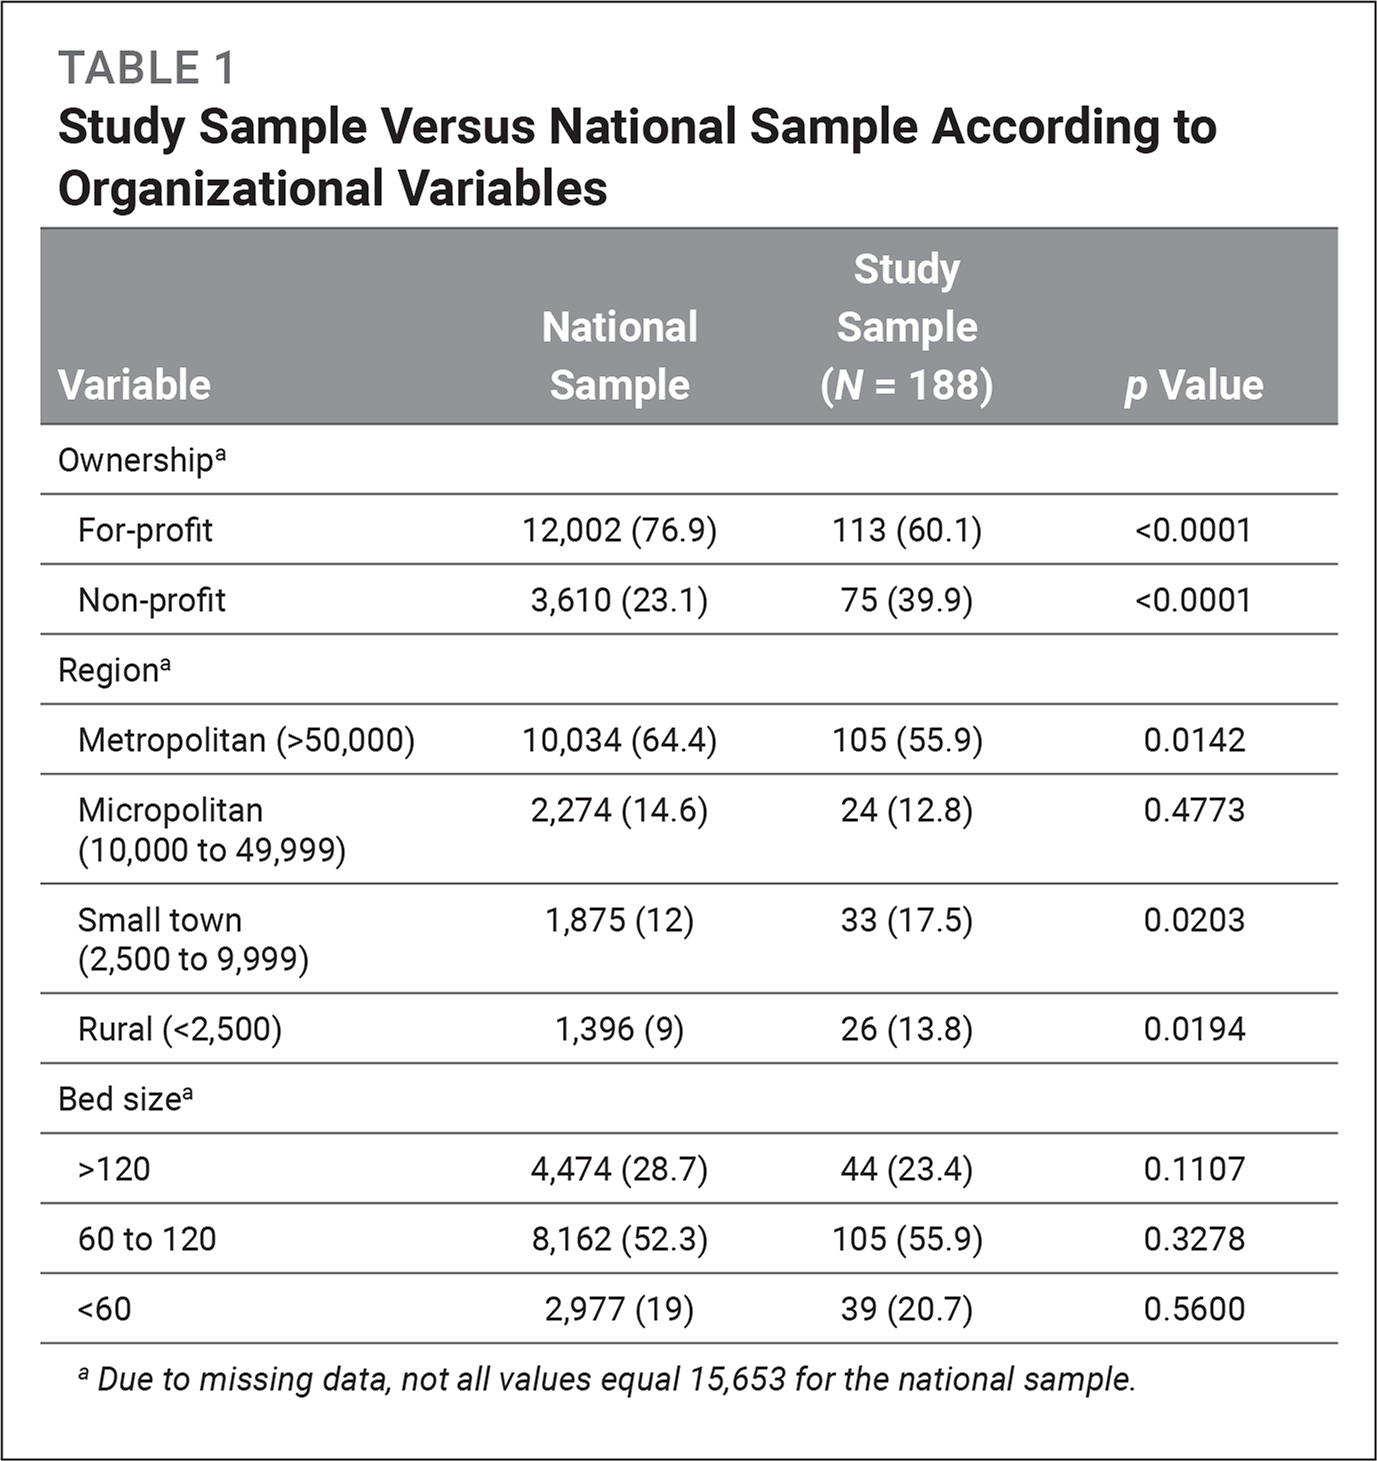 Study Sample Versus National Sample According to Organizational Variables